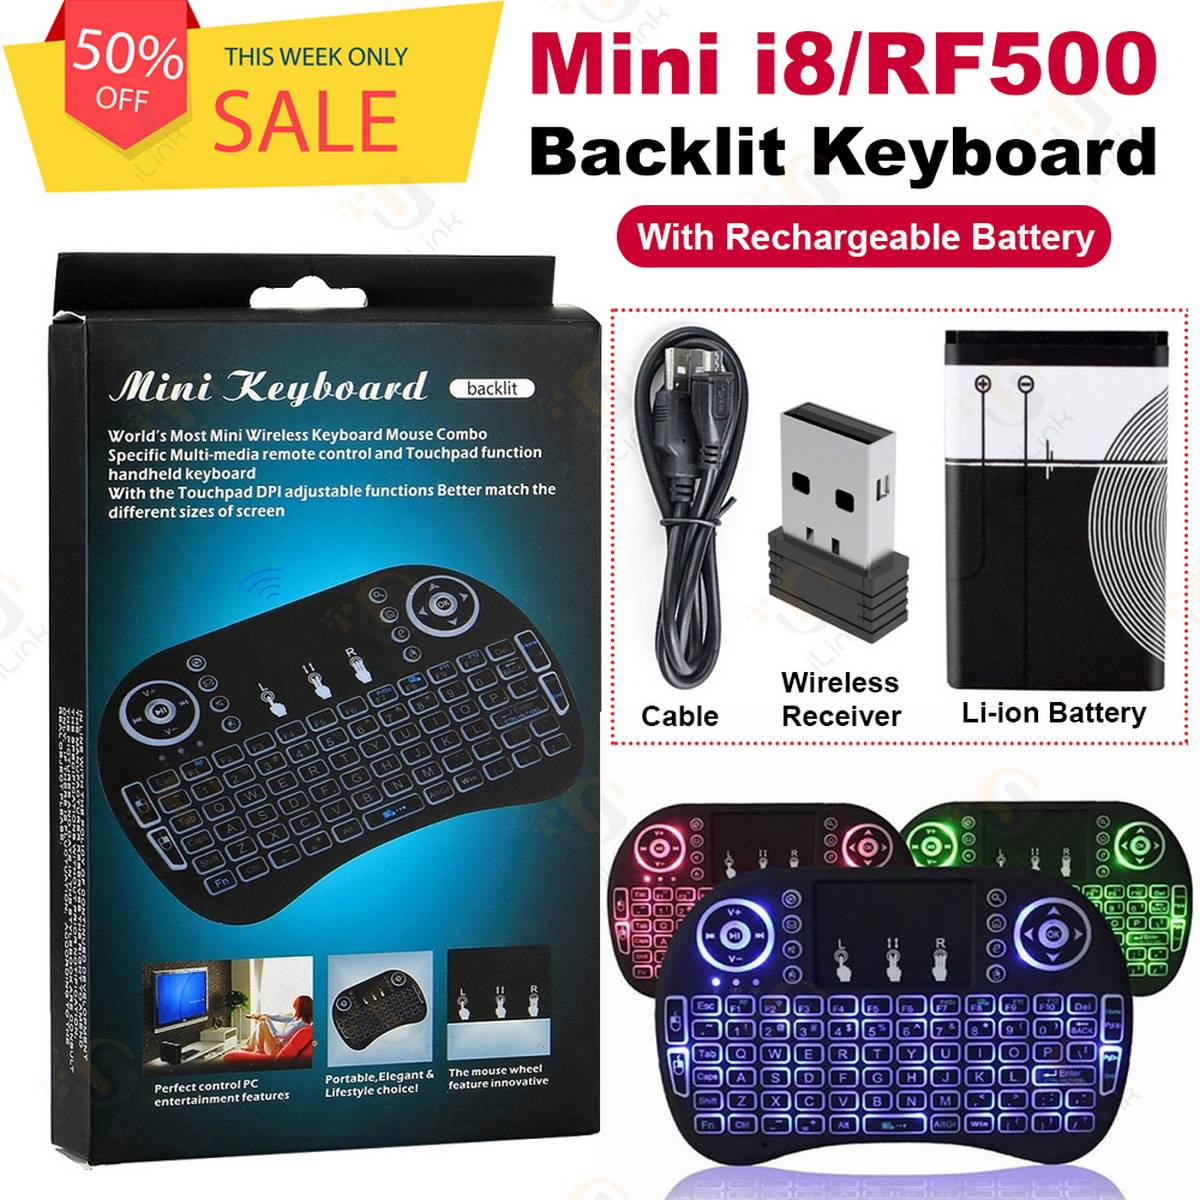 RF500 i8 Mini Wireless Backlit Keyboard 3 Colors Touchpad Air Mouse Touchpad for Android TV Box PC